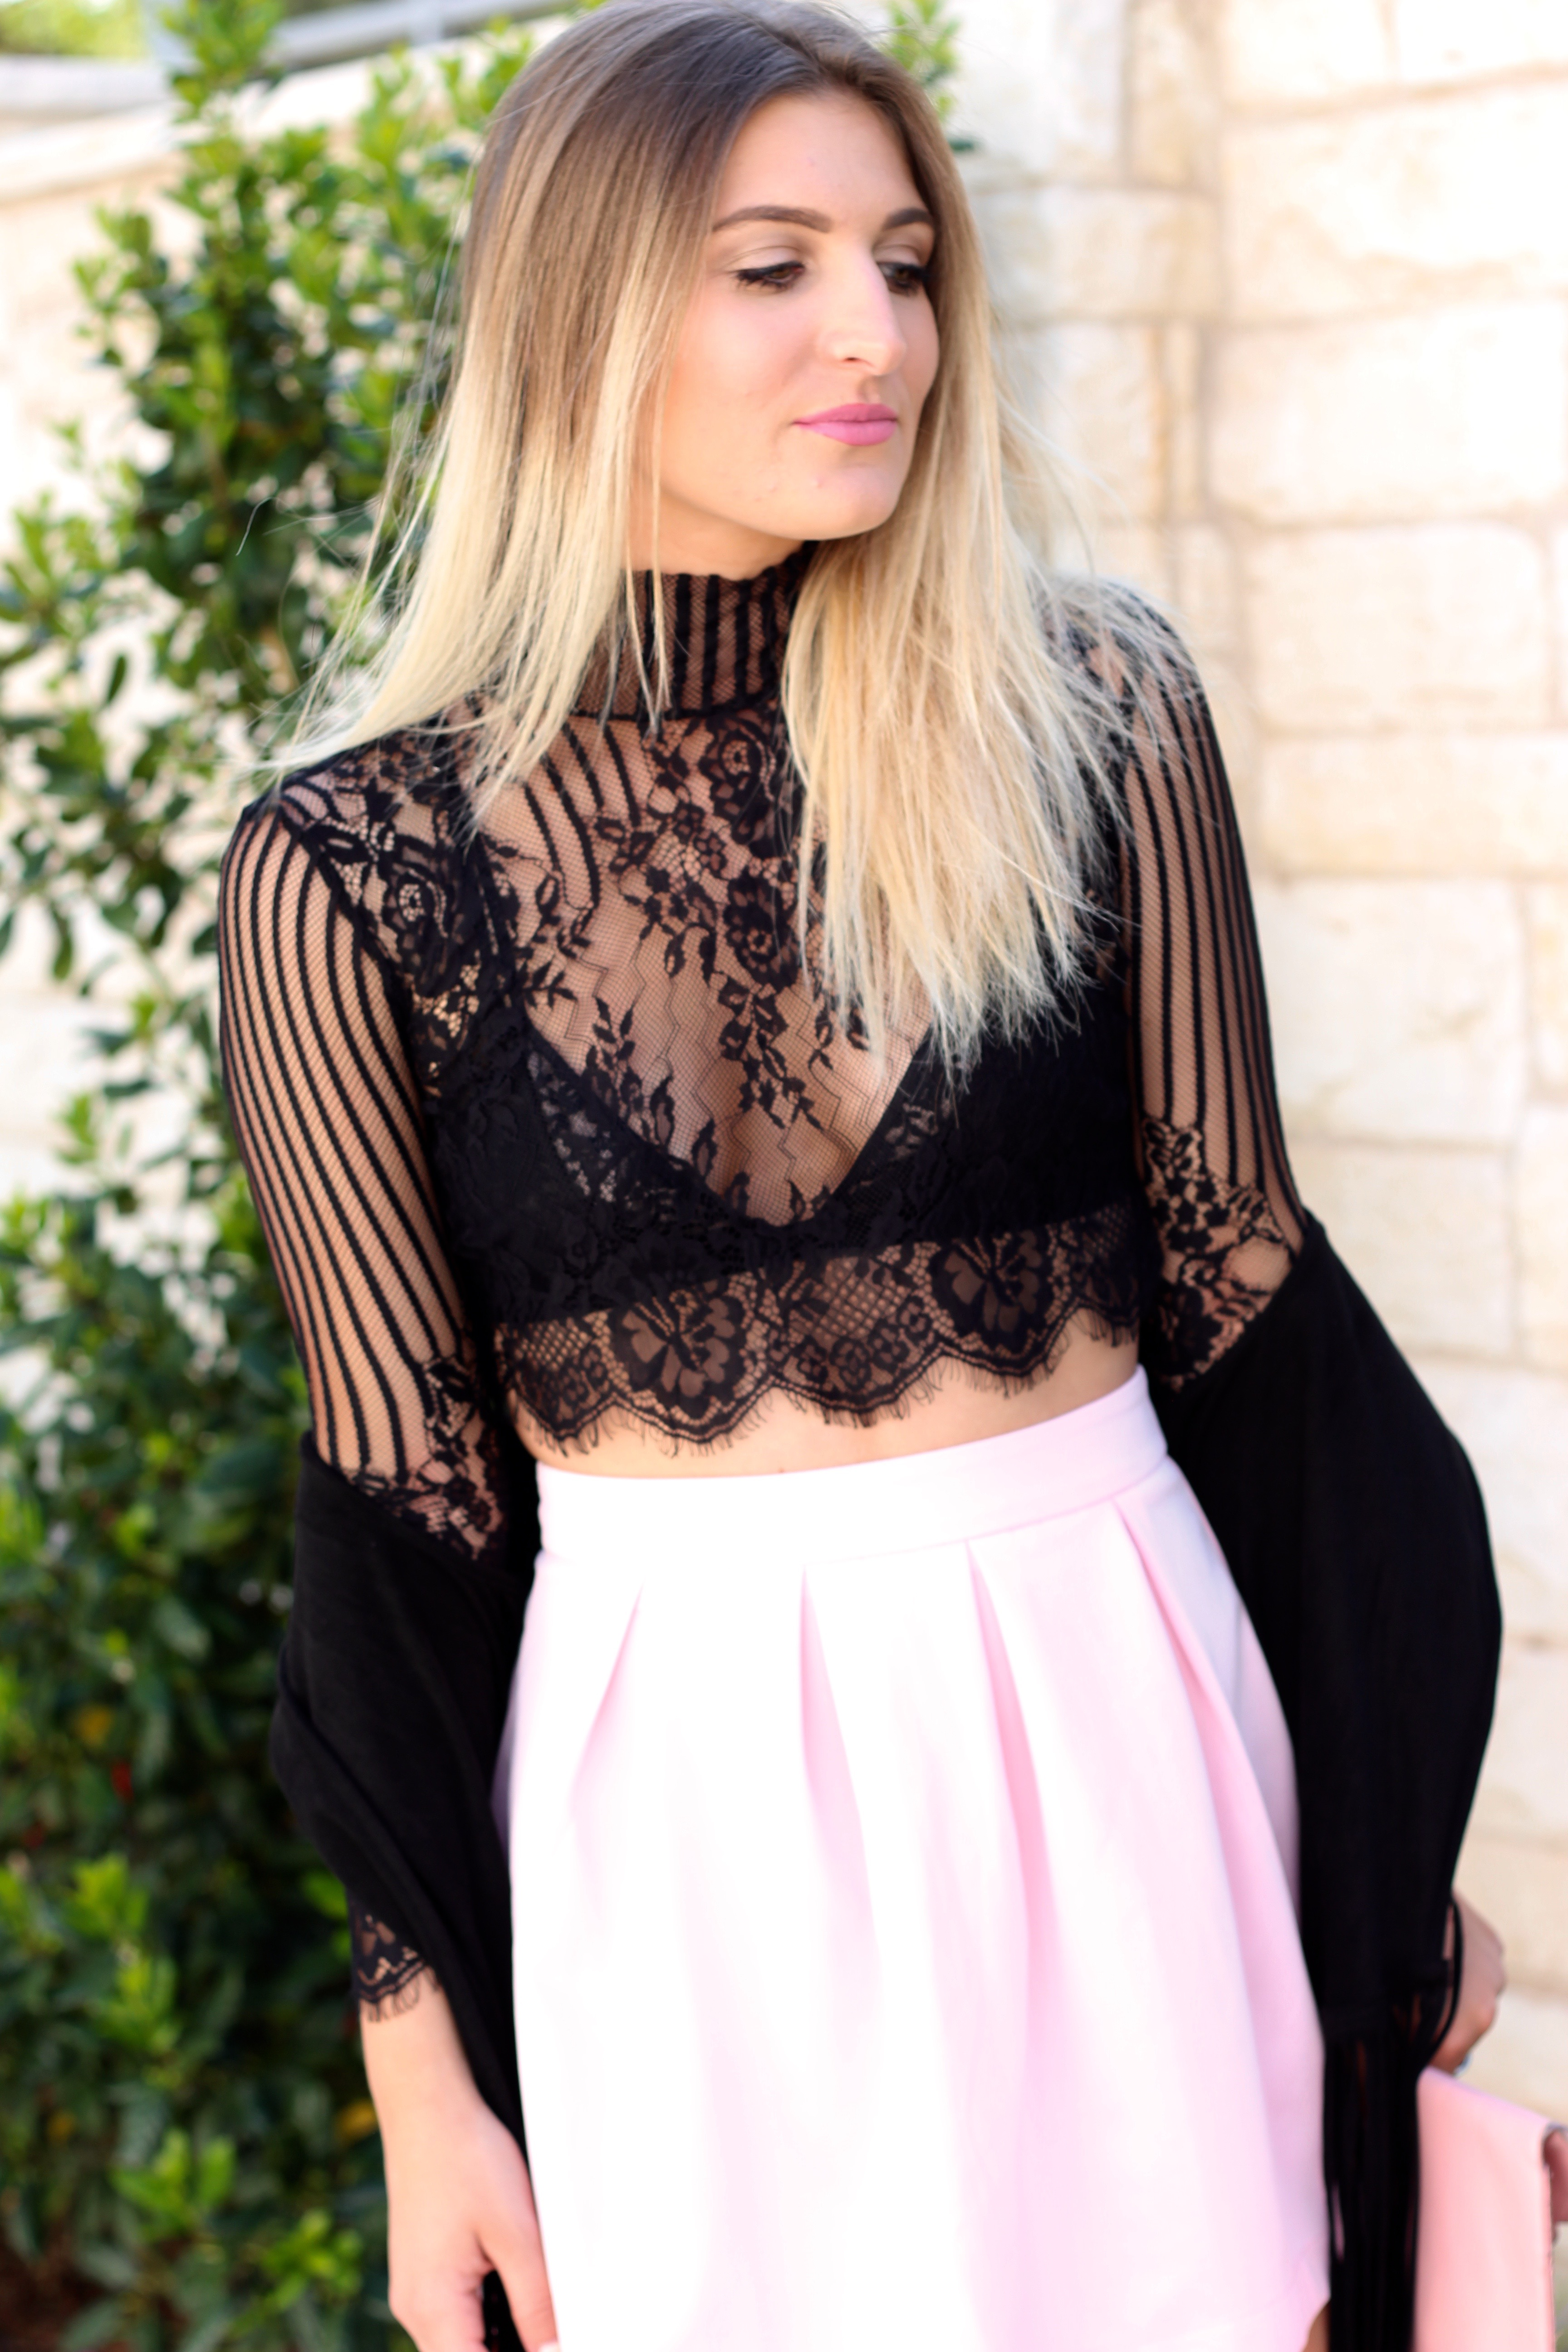 lace crop top from asos  - Lingerie Outfit By Day by popular Texas fashion blogger Audrey Madison Stowe